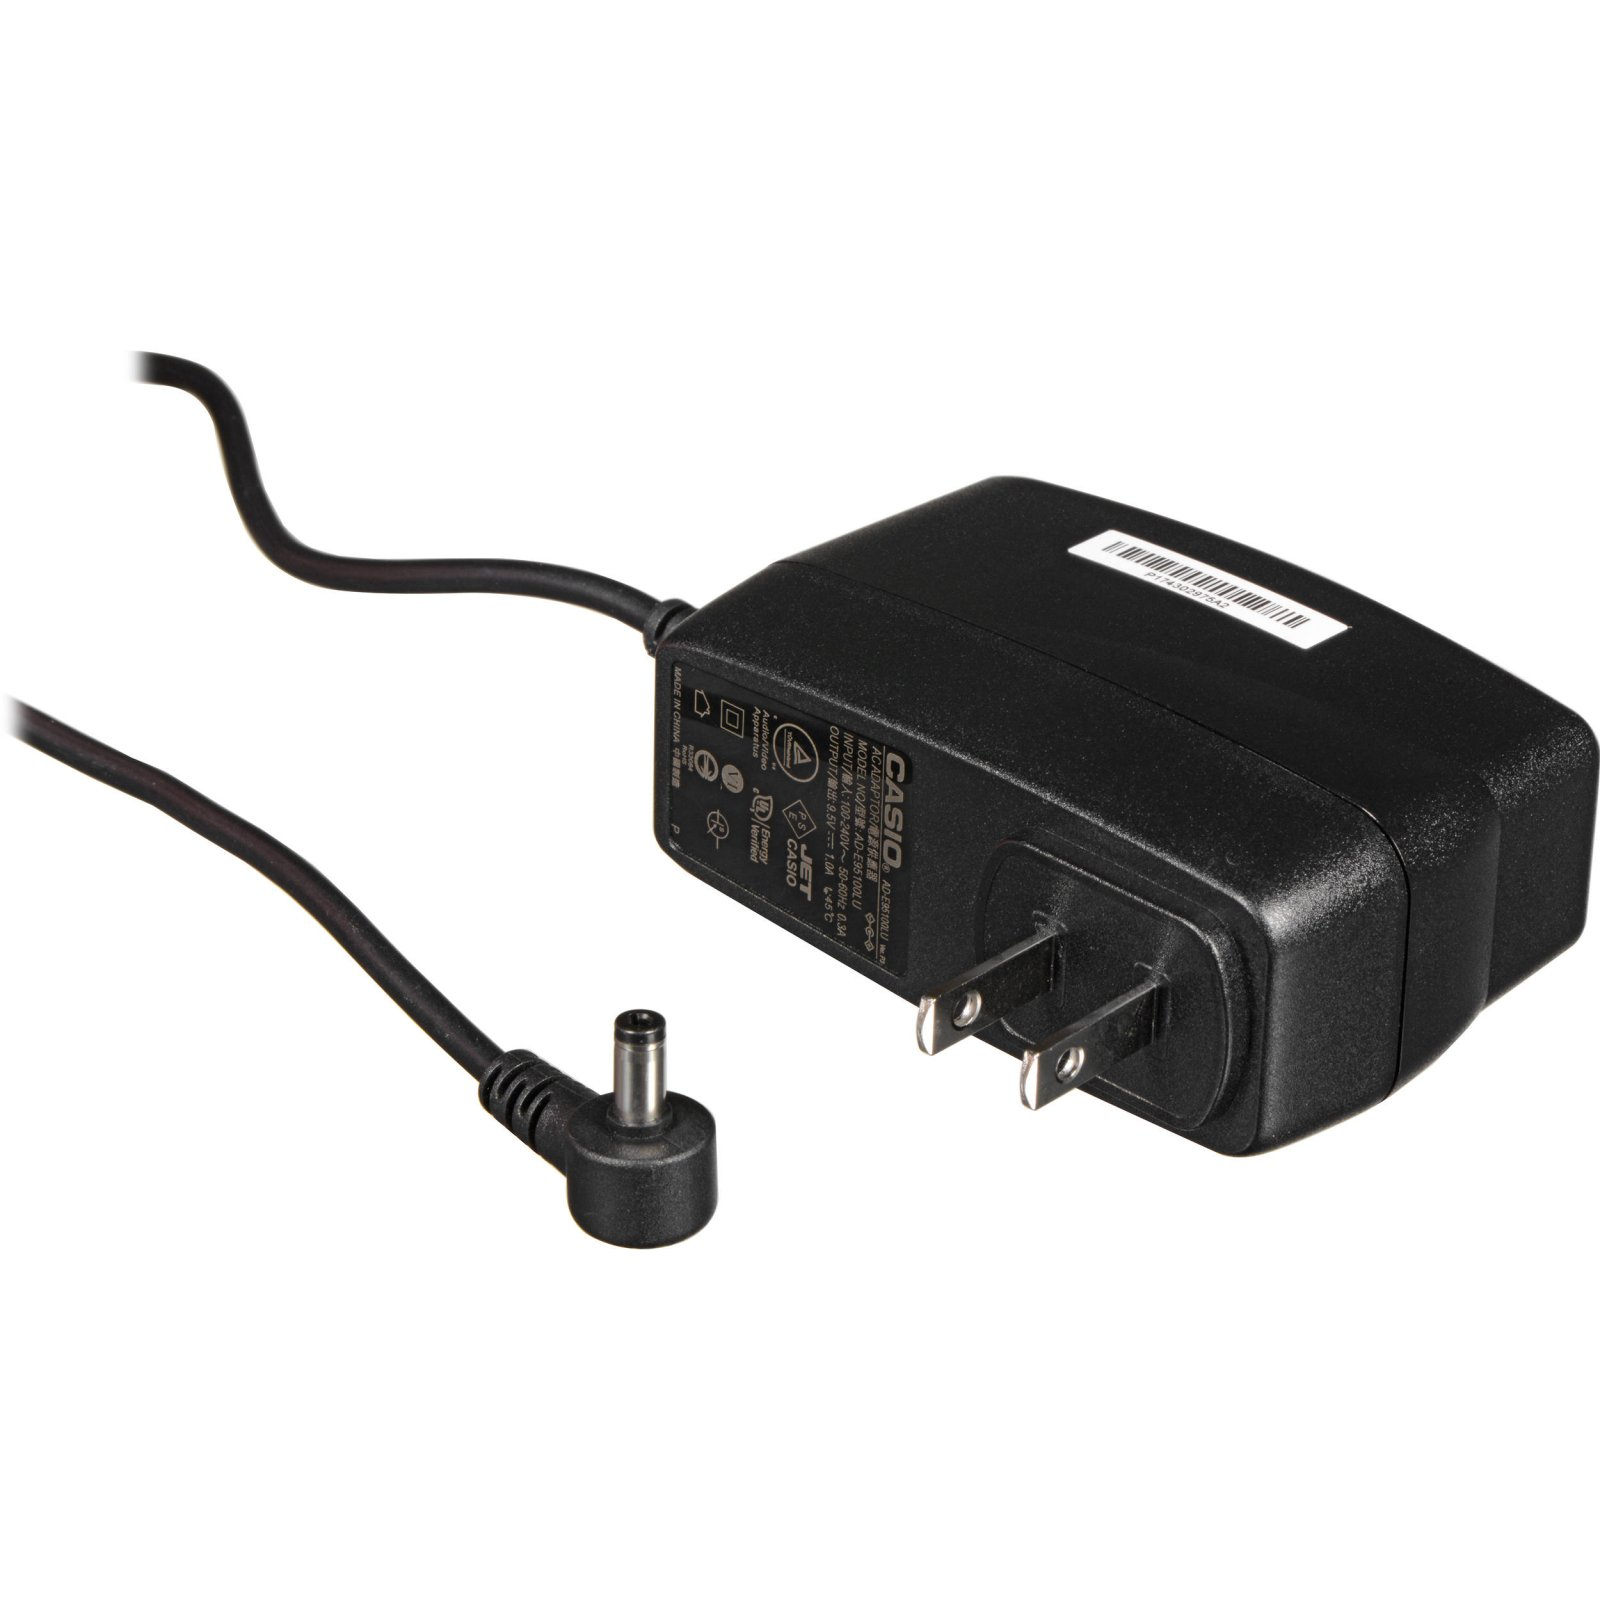 Casio 9.5V Power Adaptor